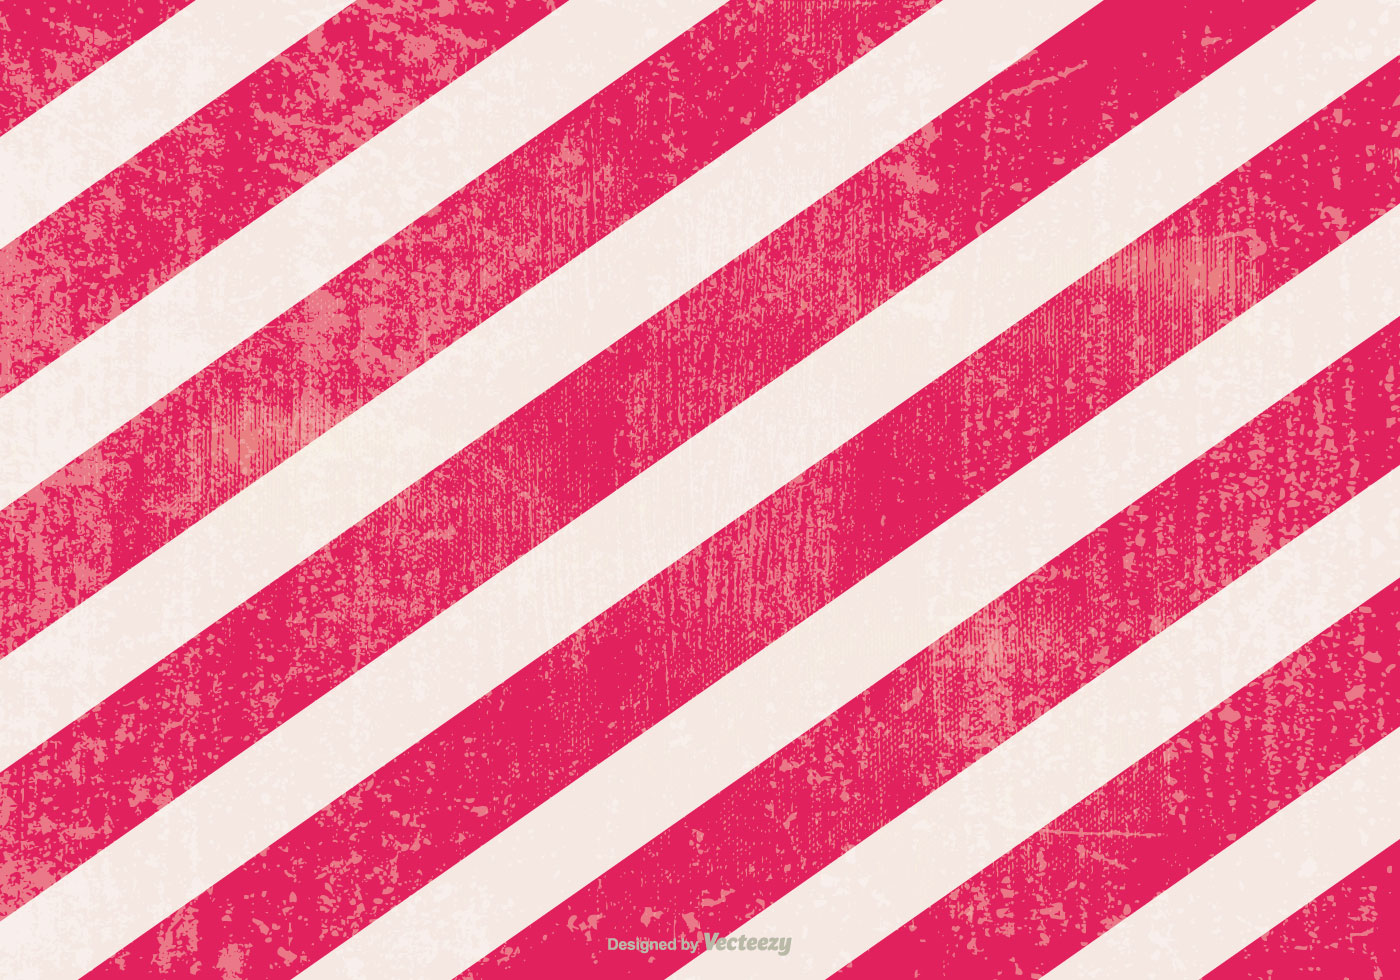 Stripes Vector Free - (25581 Free Downloads)